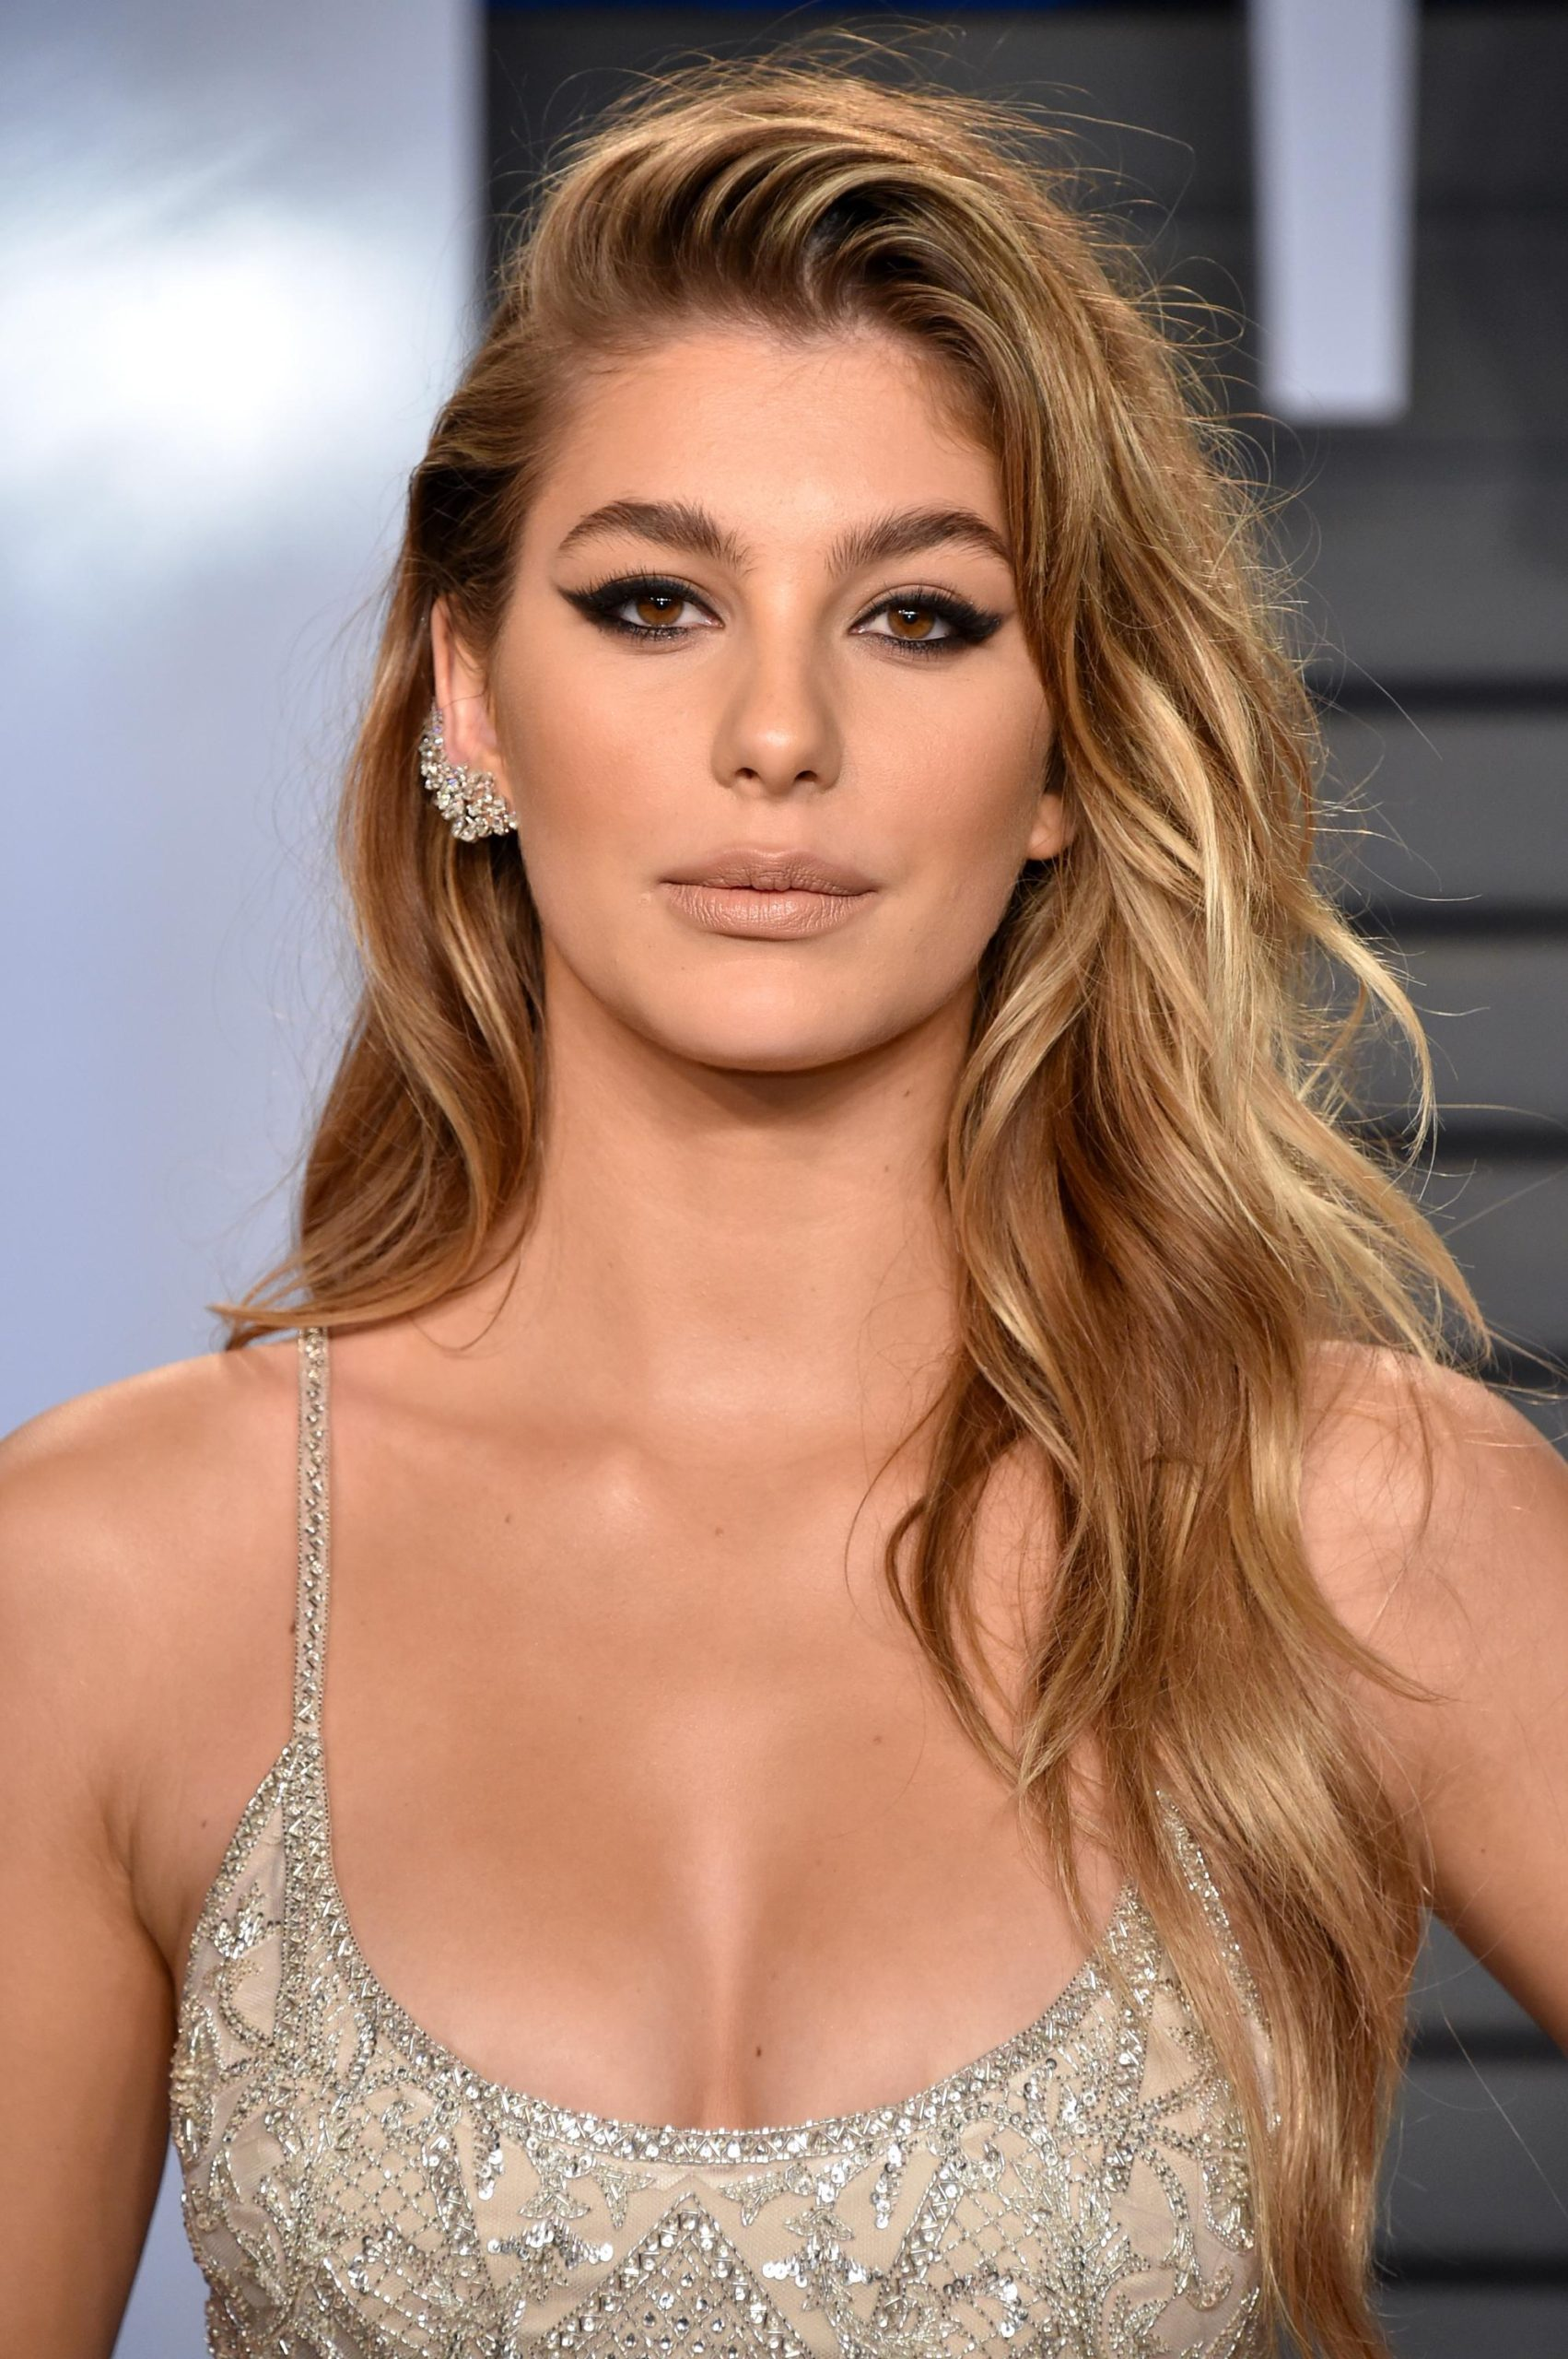 Camila Morrone Smoky Eyes scaled - Camila Morrone Net Worth, Pics, Wallpapers, Career and Biography